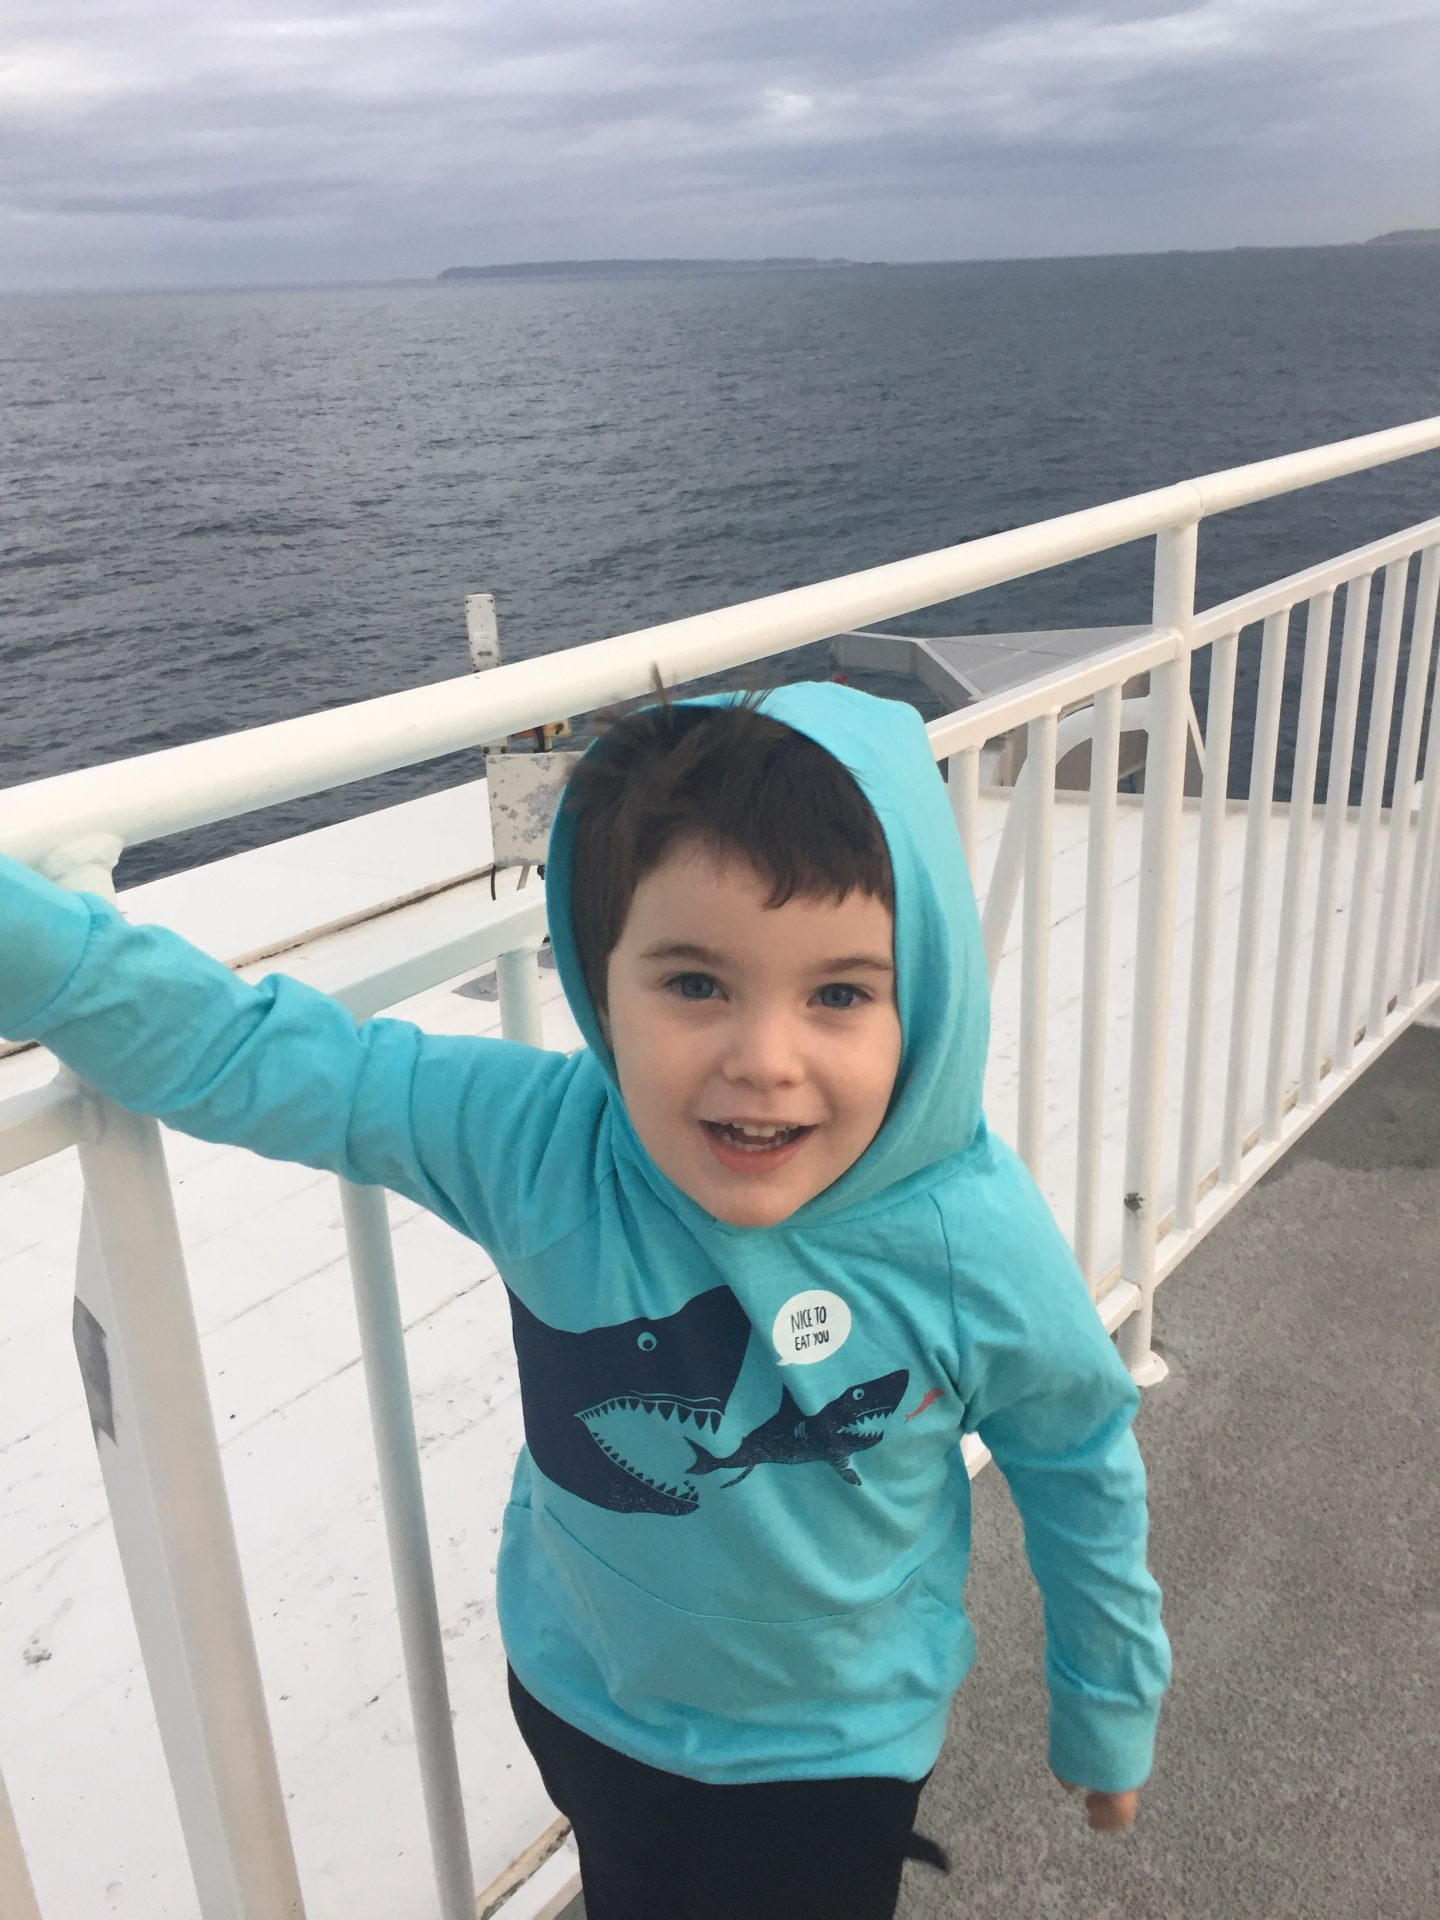 boy smiling on observation deck The Condor Liberation condor ferries